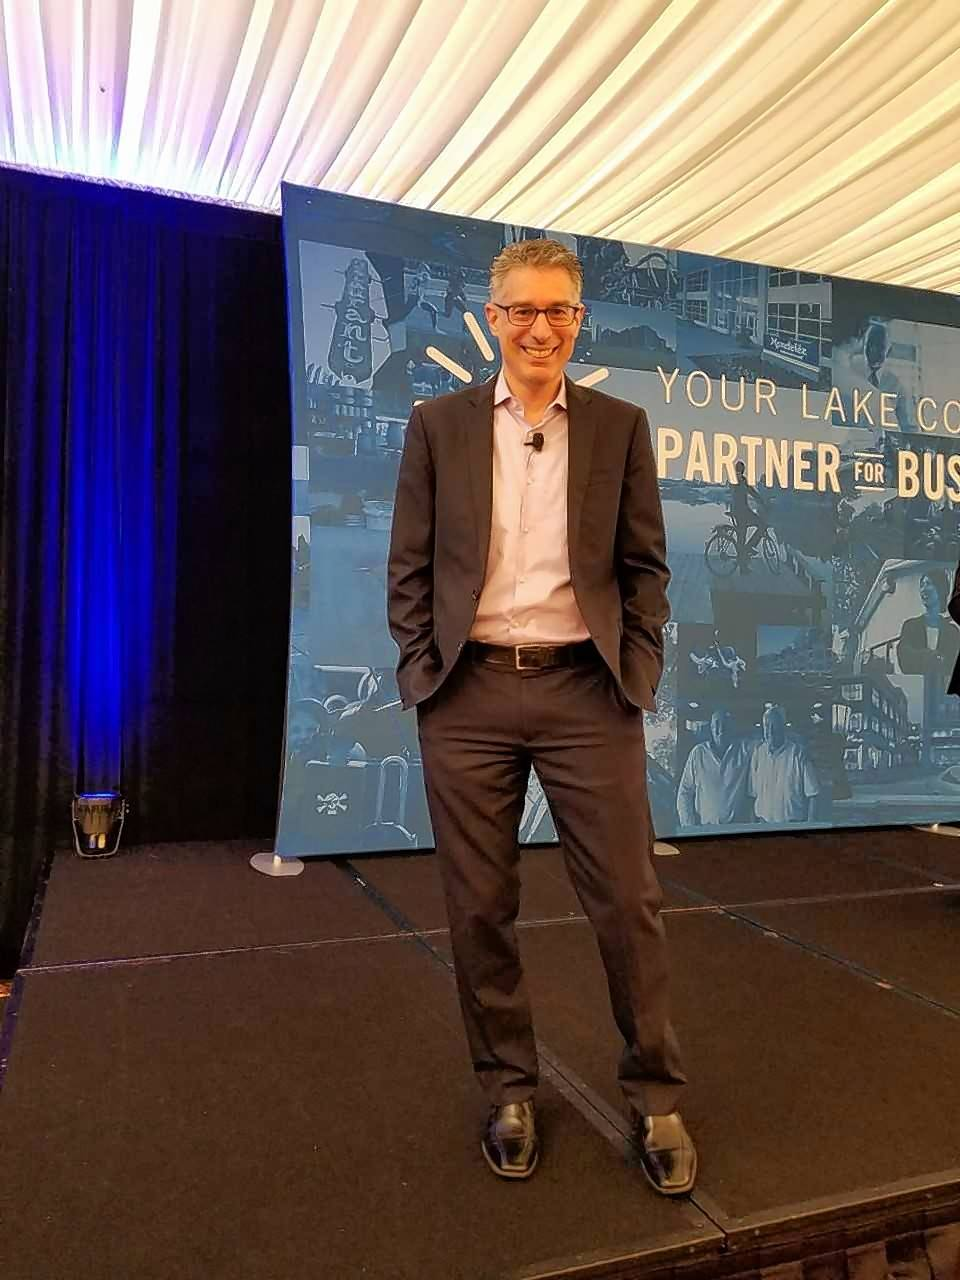 Featured speaker Robert Safian, former editor and managing director of Fast Company, shared secrets from some of the world's most innovative companies and insights on how to thrive in times of rapid change.